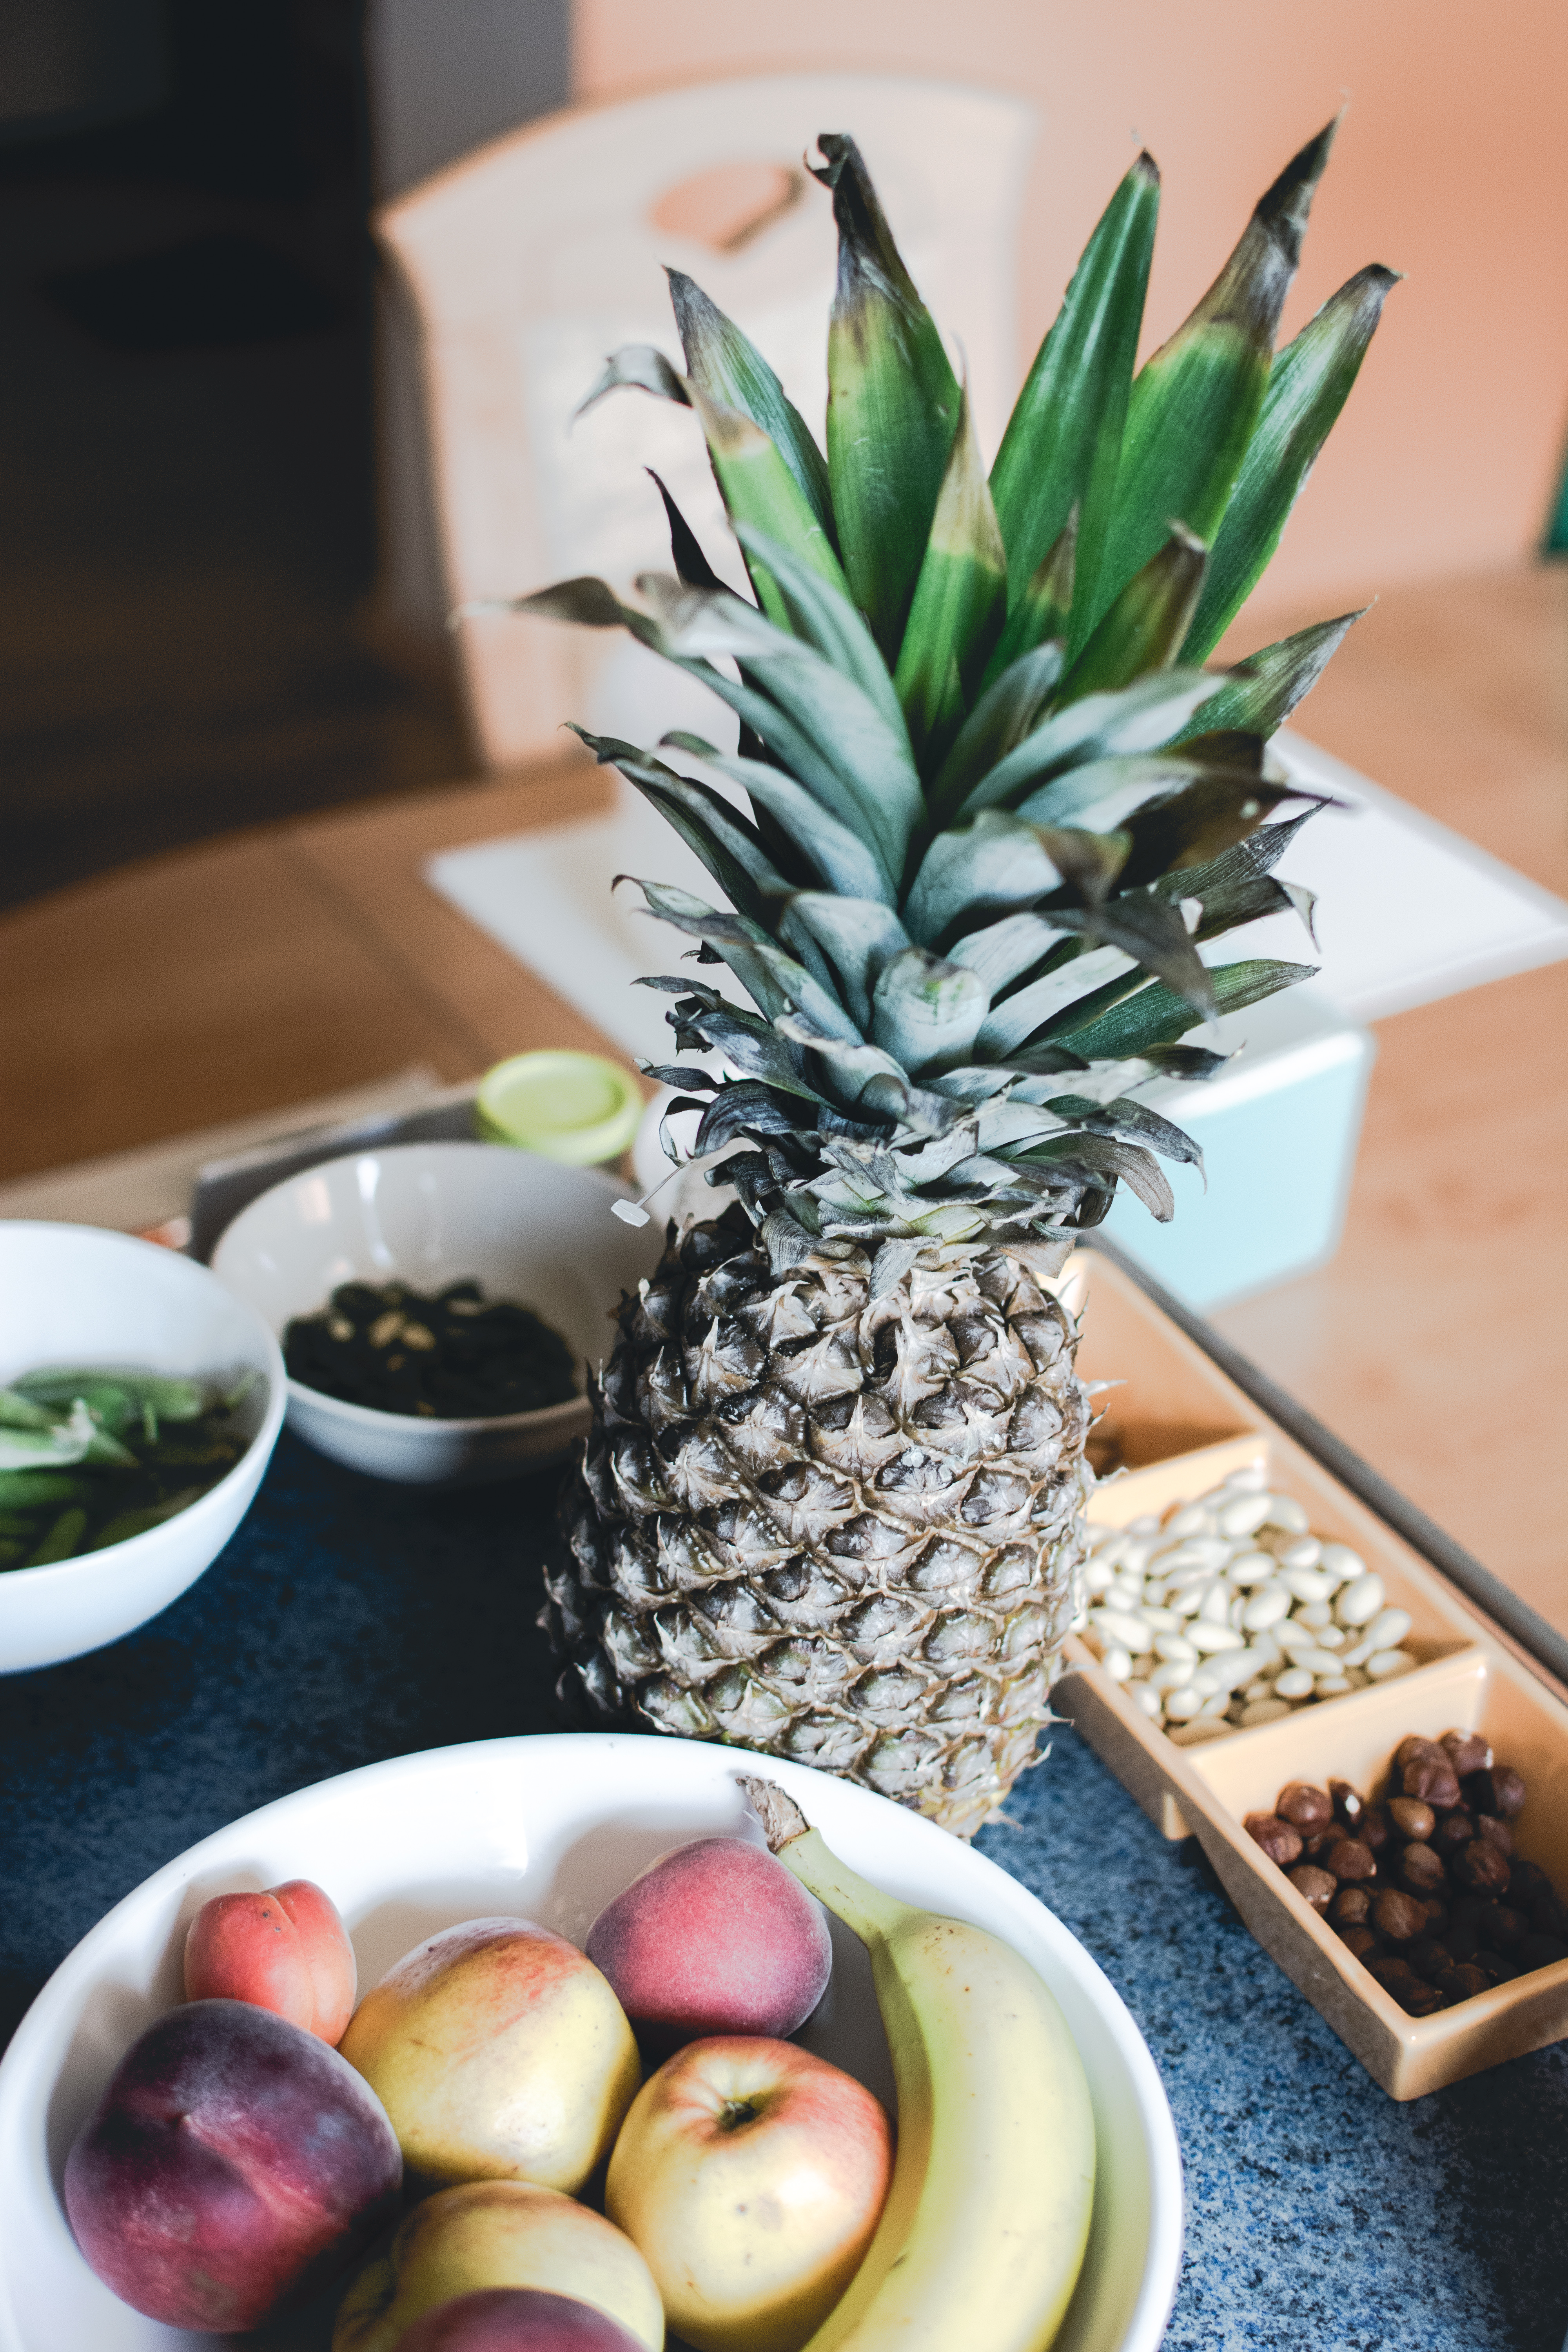 Pineapple in a kitchen